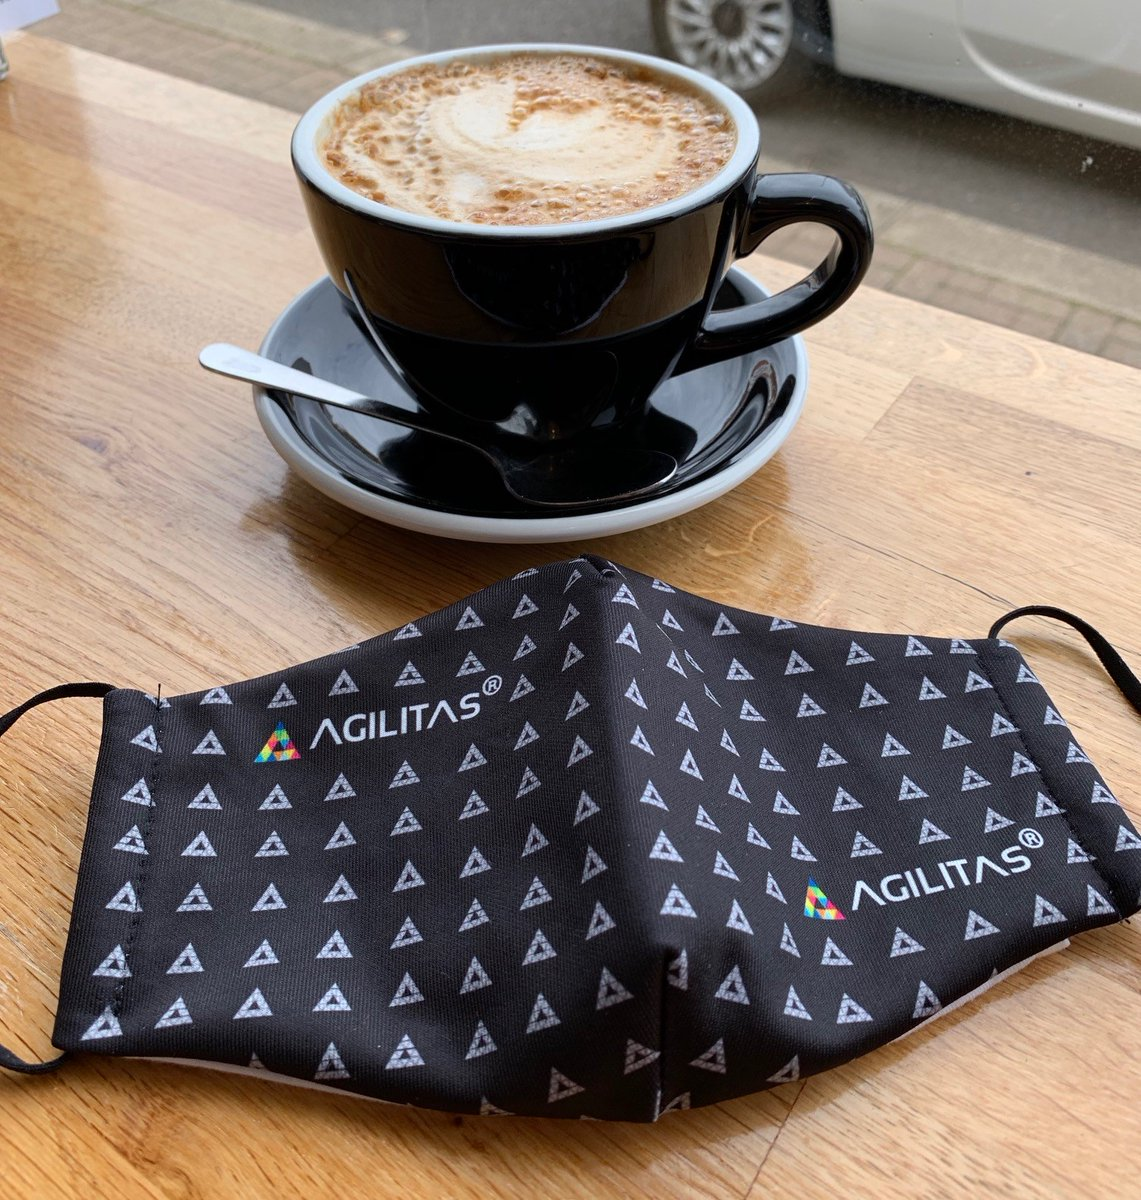 As we find ourselves in #lockdown3 we're pleased to offer all Agilitas customers a FREE #covid19 mask to help keep you safe for those times you do need to go out.  To qualify you need to be an Agilitas customer & follow our socials - email your request to info@agilitas.co.uk